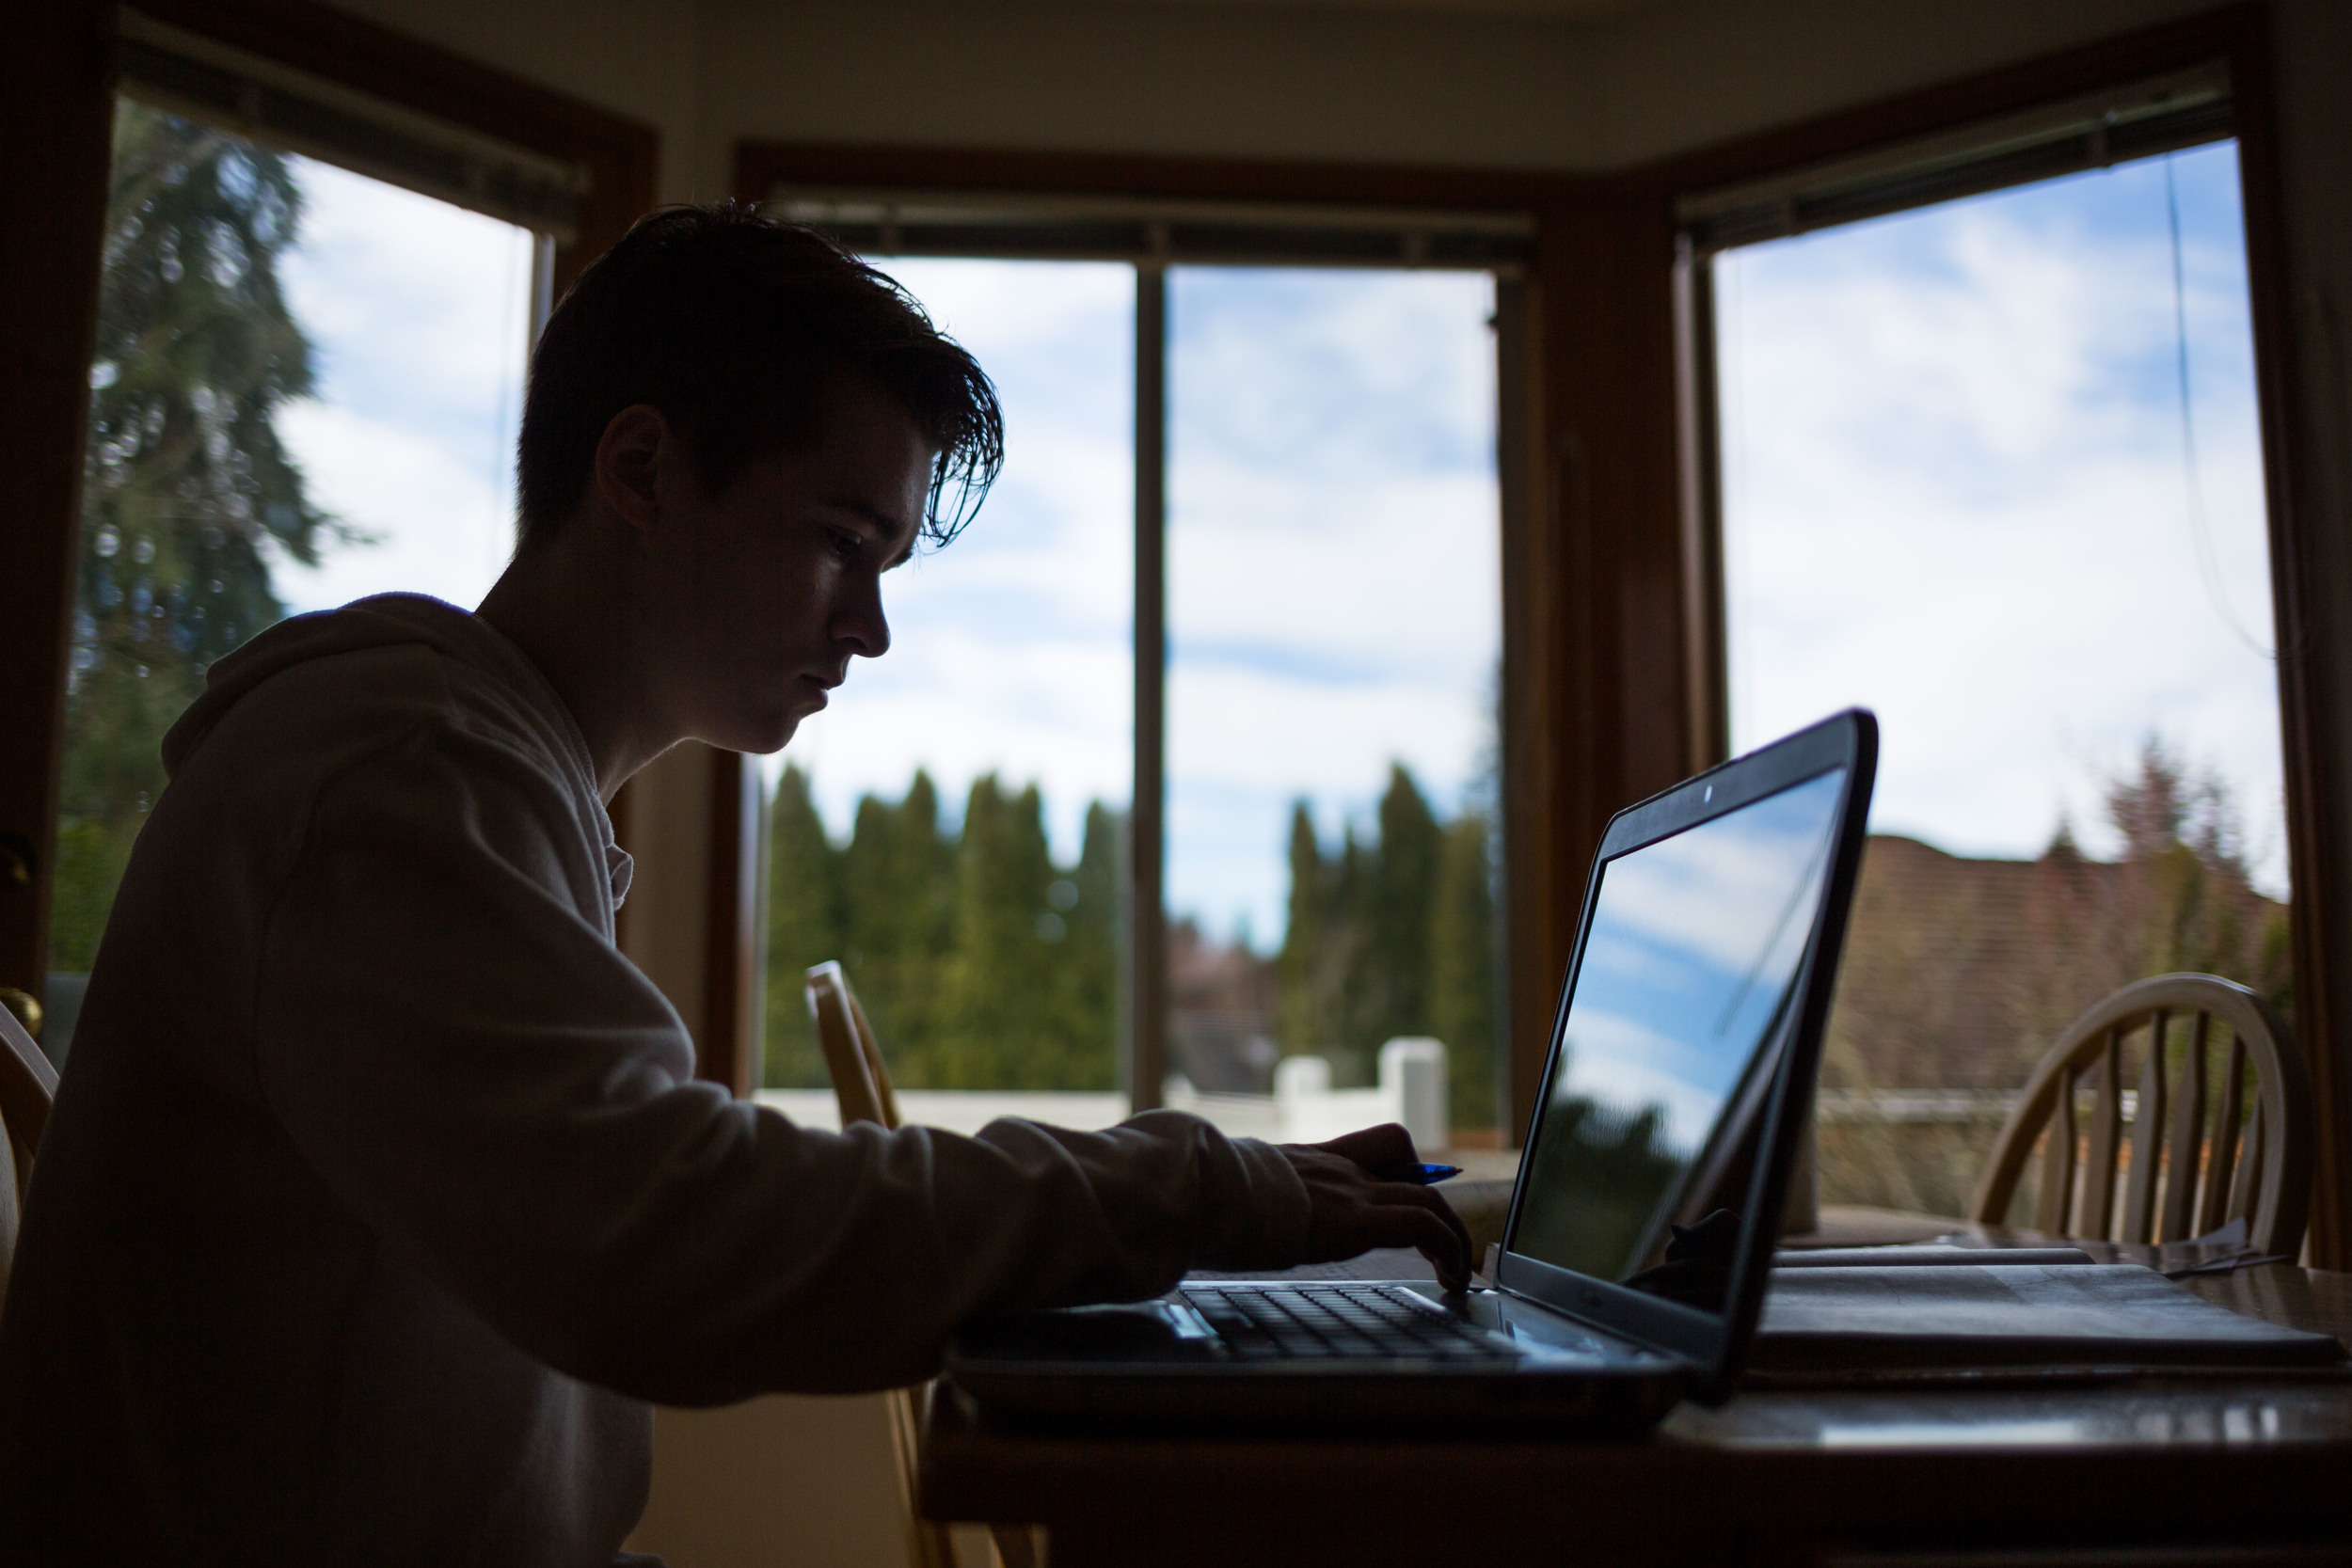 BRADEN HANSEN USES HIS COMPUTER FOR HOMEWORK AT HIS HOME IN MUKILTEO. TO HELP DEAL WITH HIS DISORDER, HANSEN ADHERES TO SOME RECOMMENDATIONS TO HELP REDUCE FATIGUE LIKE AVOIDING ALCOHOL AND NICOTINE. For Klipsun Magazine